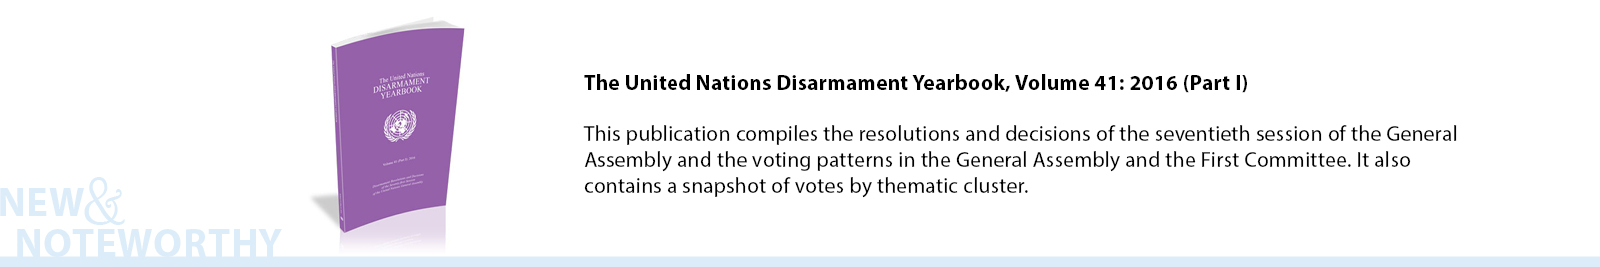 With a foreword by the High Representative for Disarmament Affairs, the Yearbook summarizes developments and trends in 2015 on key issues of multilateral consideration at the international and regional levels; reviews the activities of the General Assembly, the Conference on Disarmament and the Disarmament Commission; and contains a timeline of highlights of multilateral disarmament in 2015.